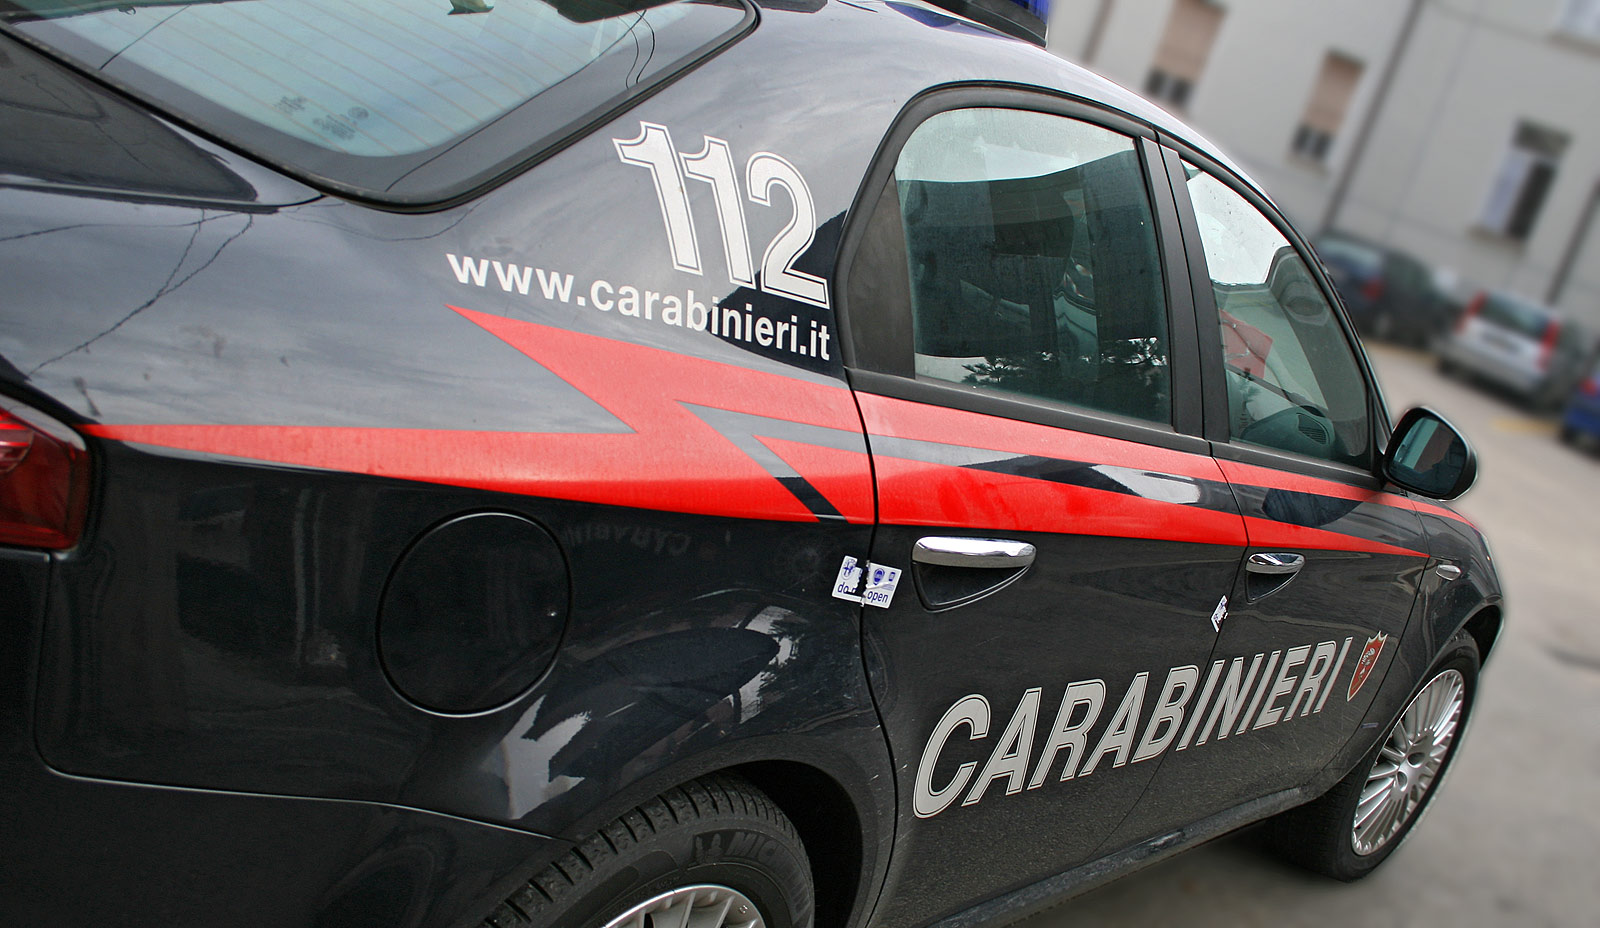 Droga, arrestato 18enne a Villabate